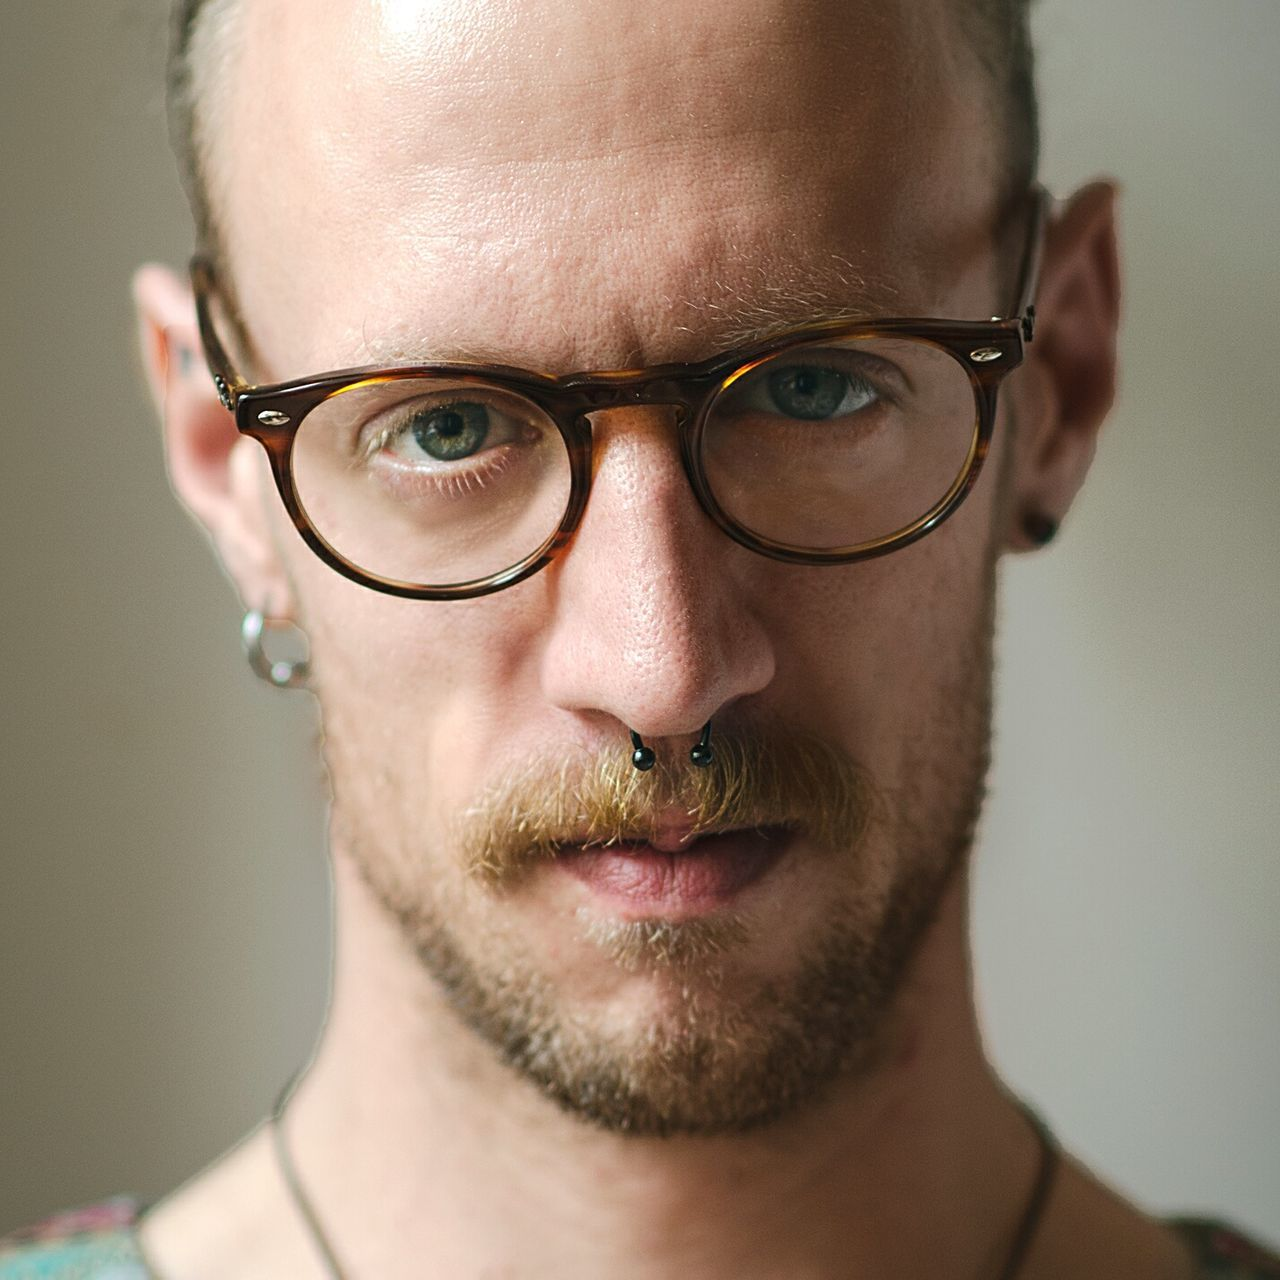 Portrait Looking At Camera Adult Front View Headshot Adults Only Only Men Human Body Part One Person One Man Only Human Face Eyeglasses  People Individuality Studio Shot Shaved Head Young Adult Real People Attitude Close-up Natural Natural Light Berlin